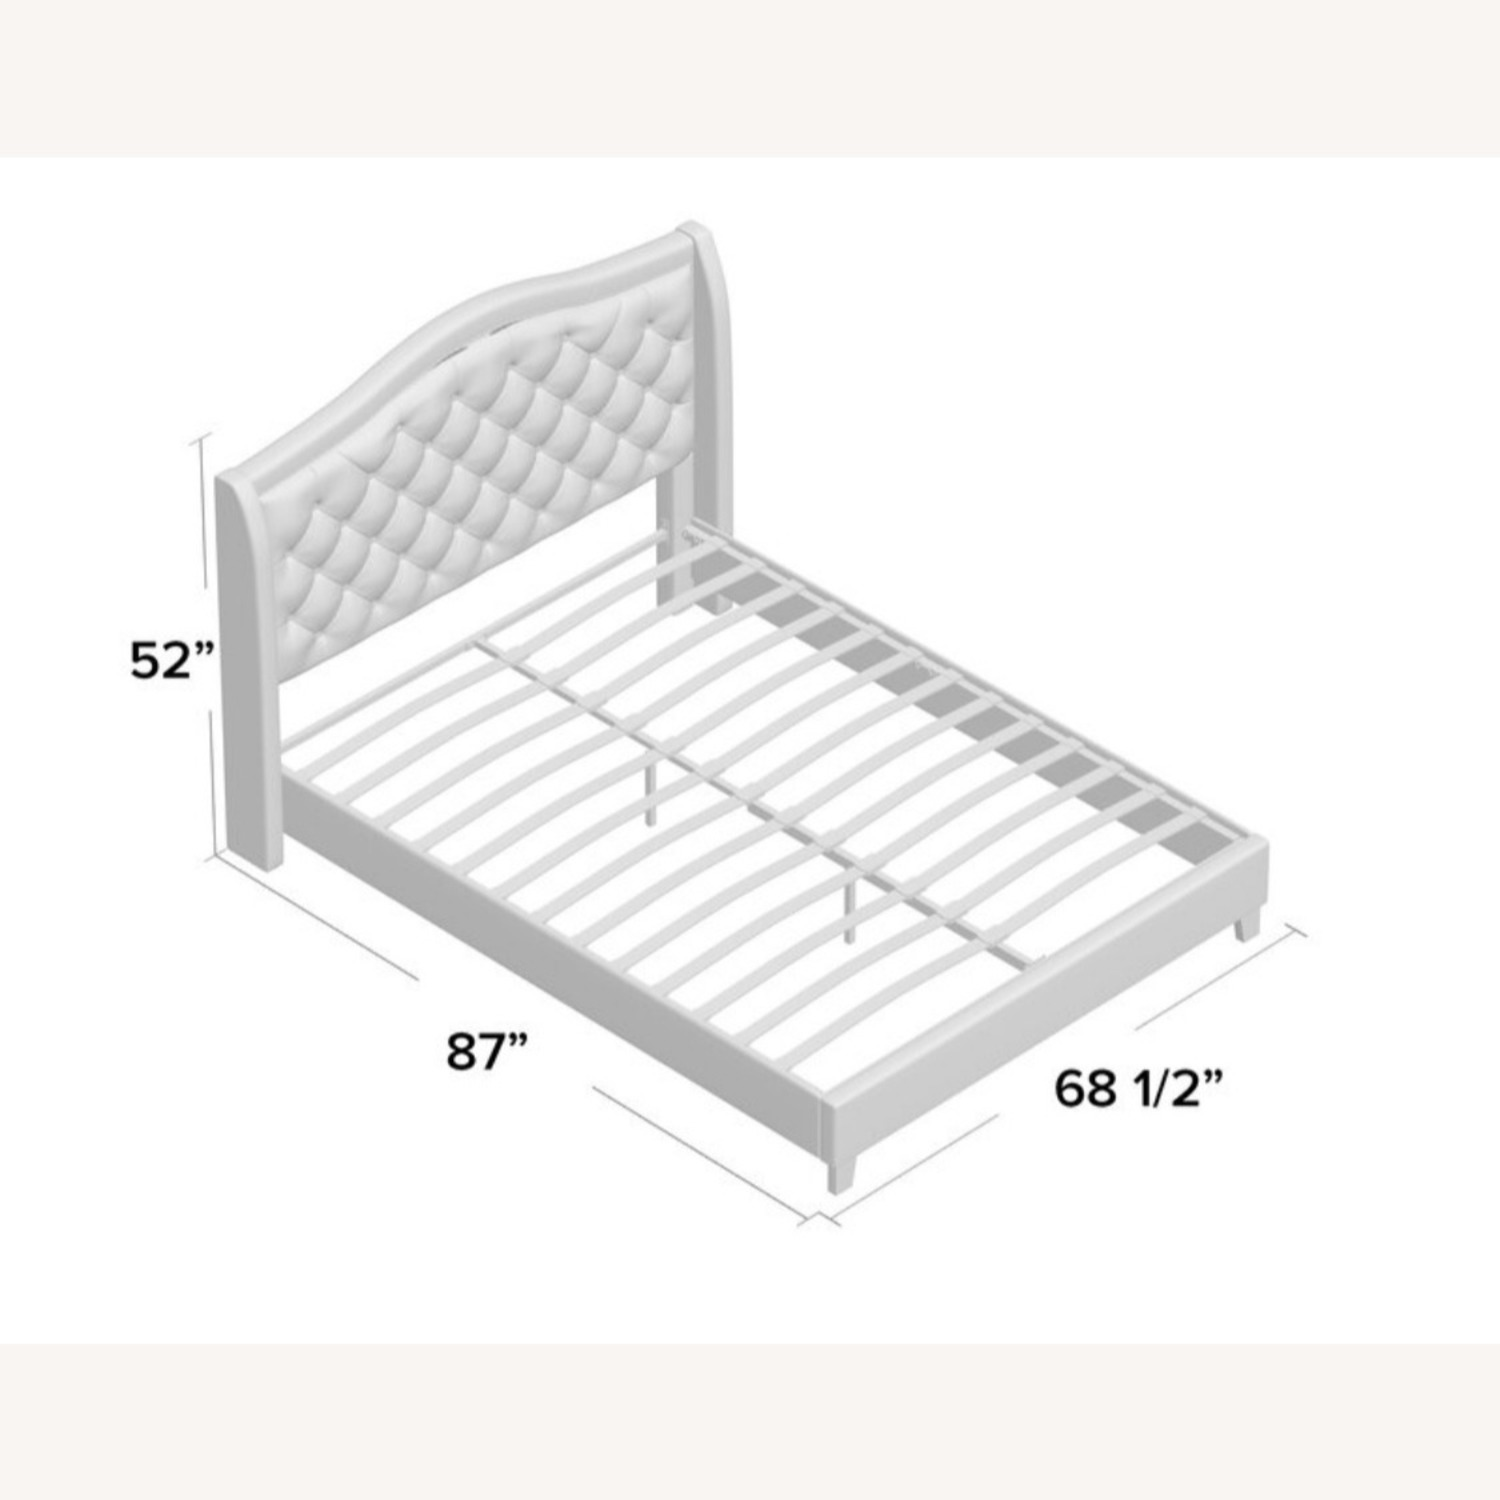 Wayfair Upholstered Bed Frame Ivory Queen Size - image-2